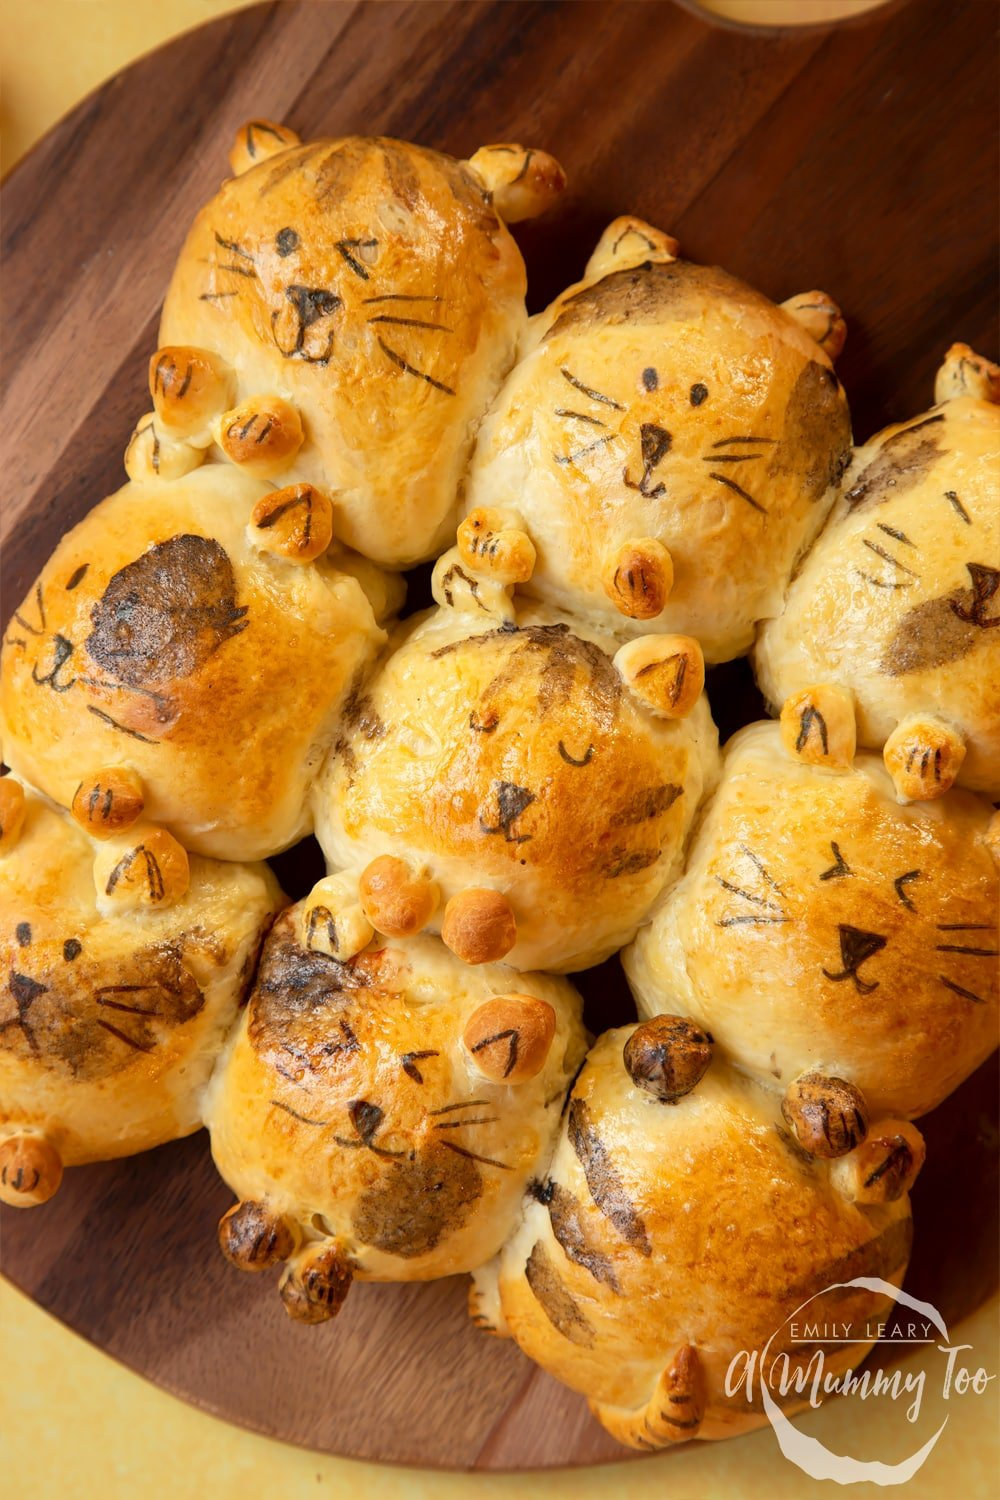 Kim-Joy's Tangzhong Cat Buns - nine bread rolls on a board, shaped and decorated to resemble cats